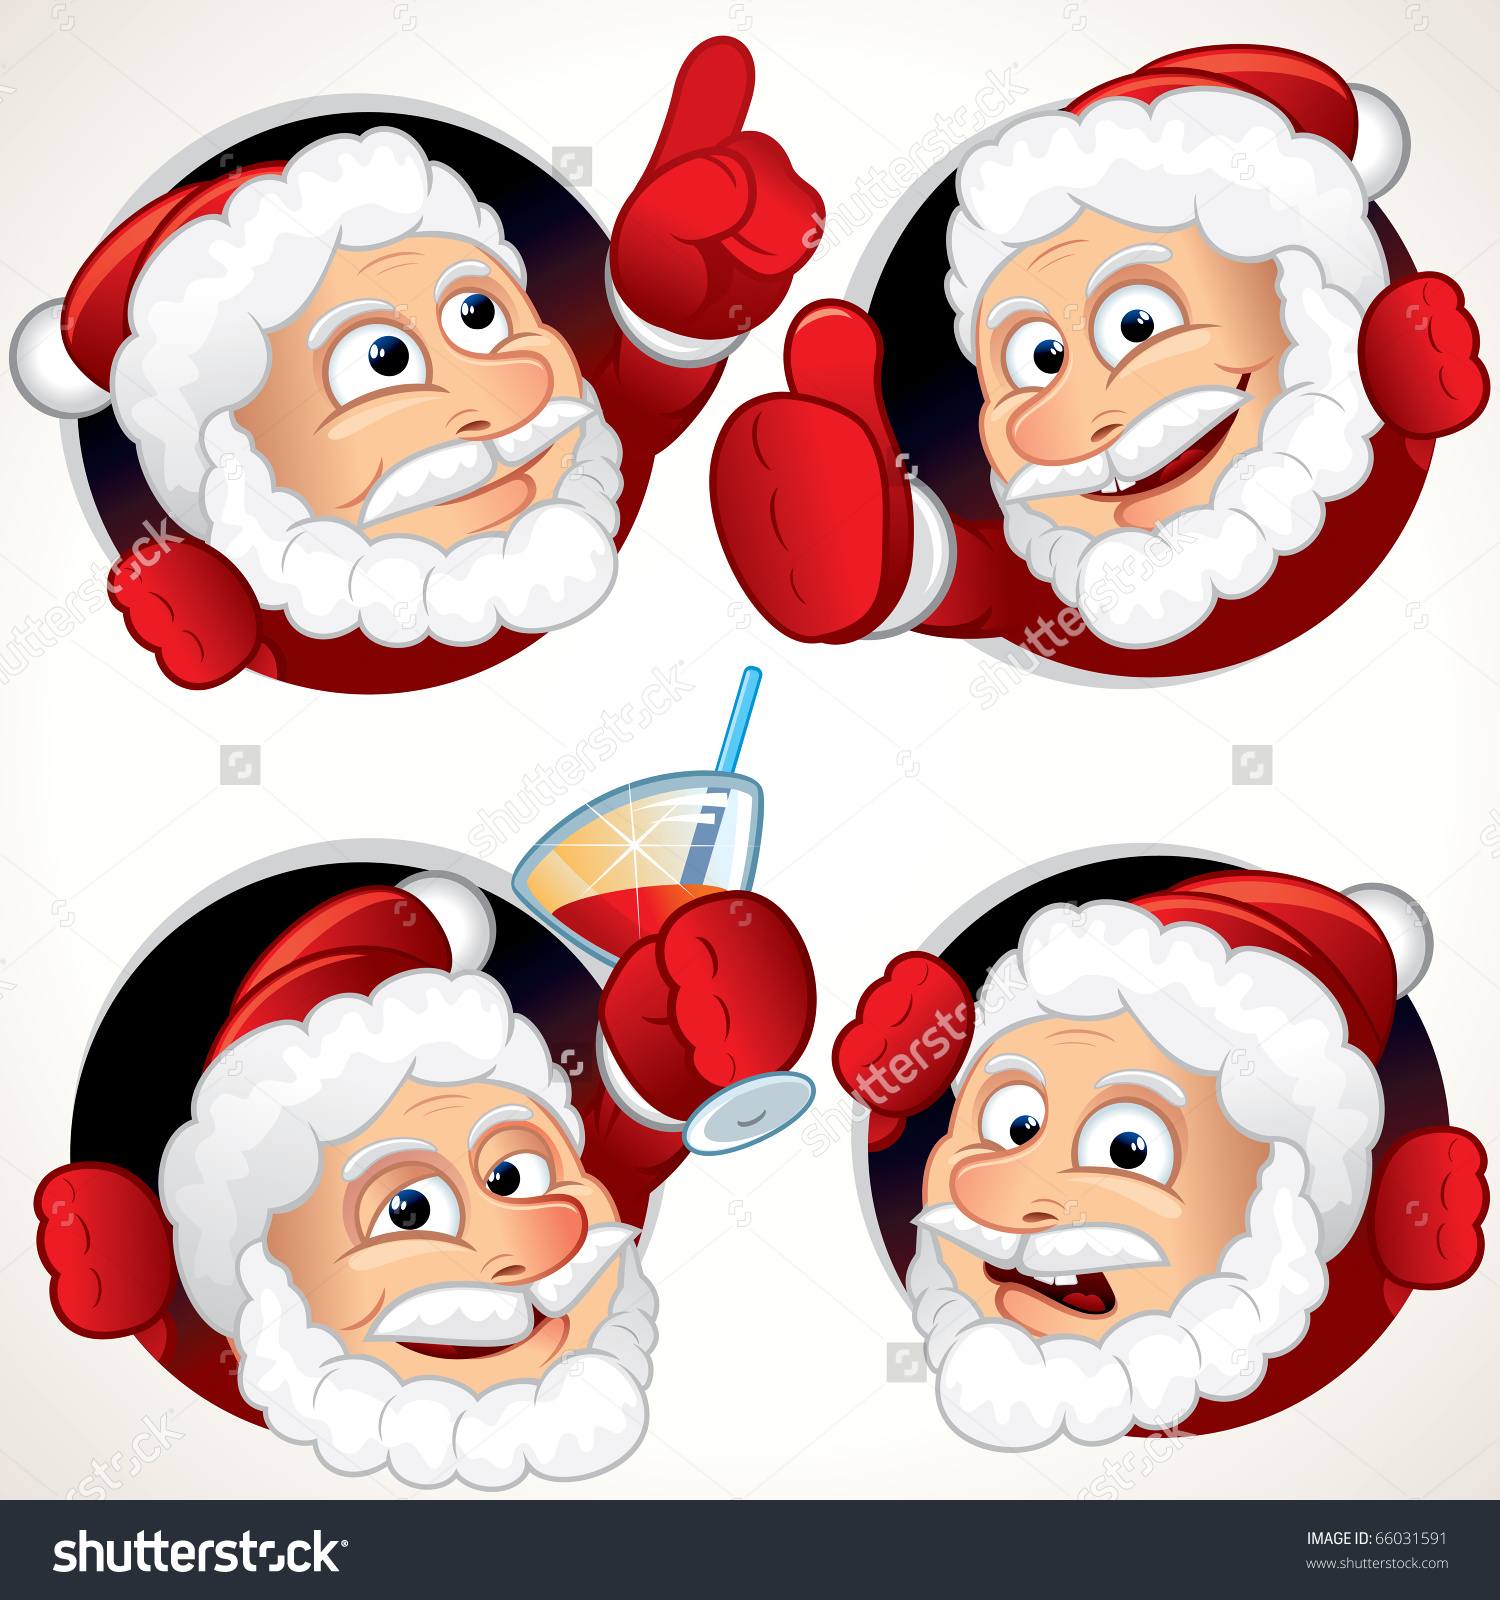 Cute Santa Claus Character Emotion And Gestures.